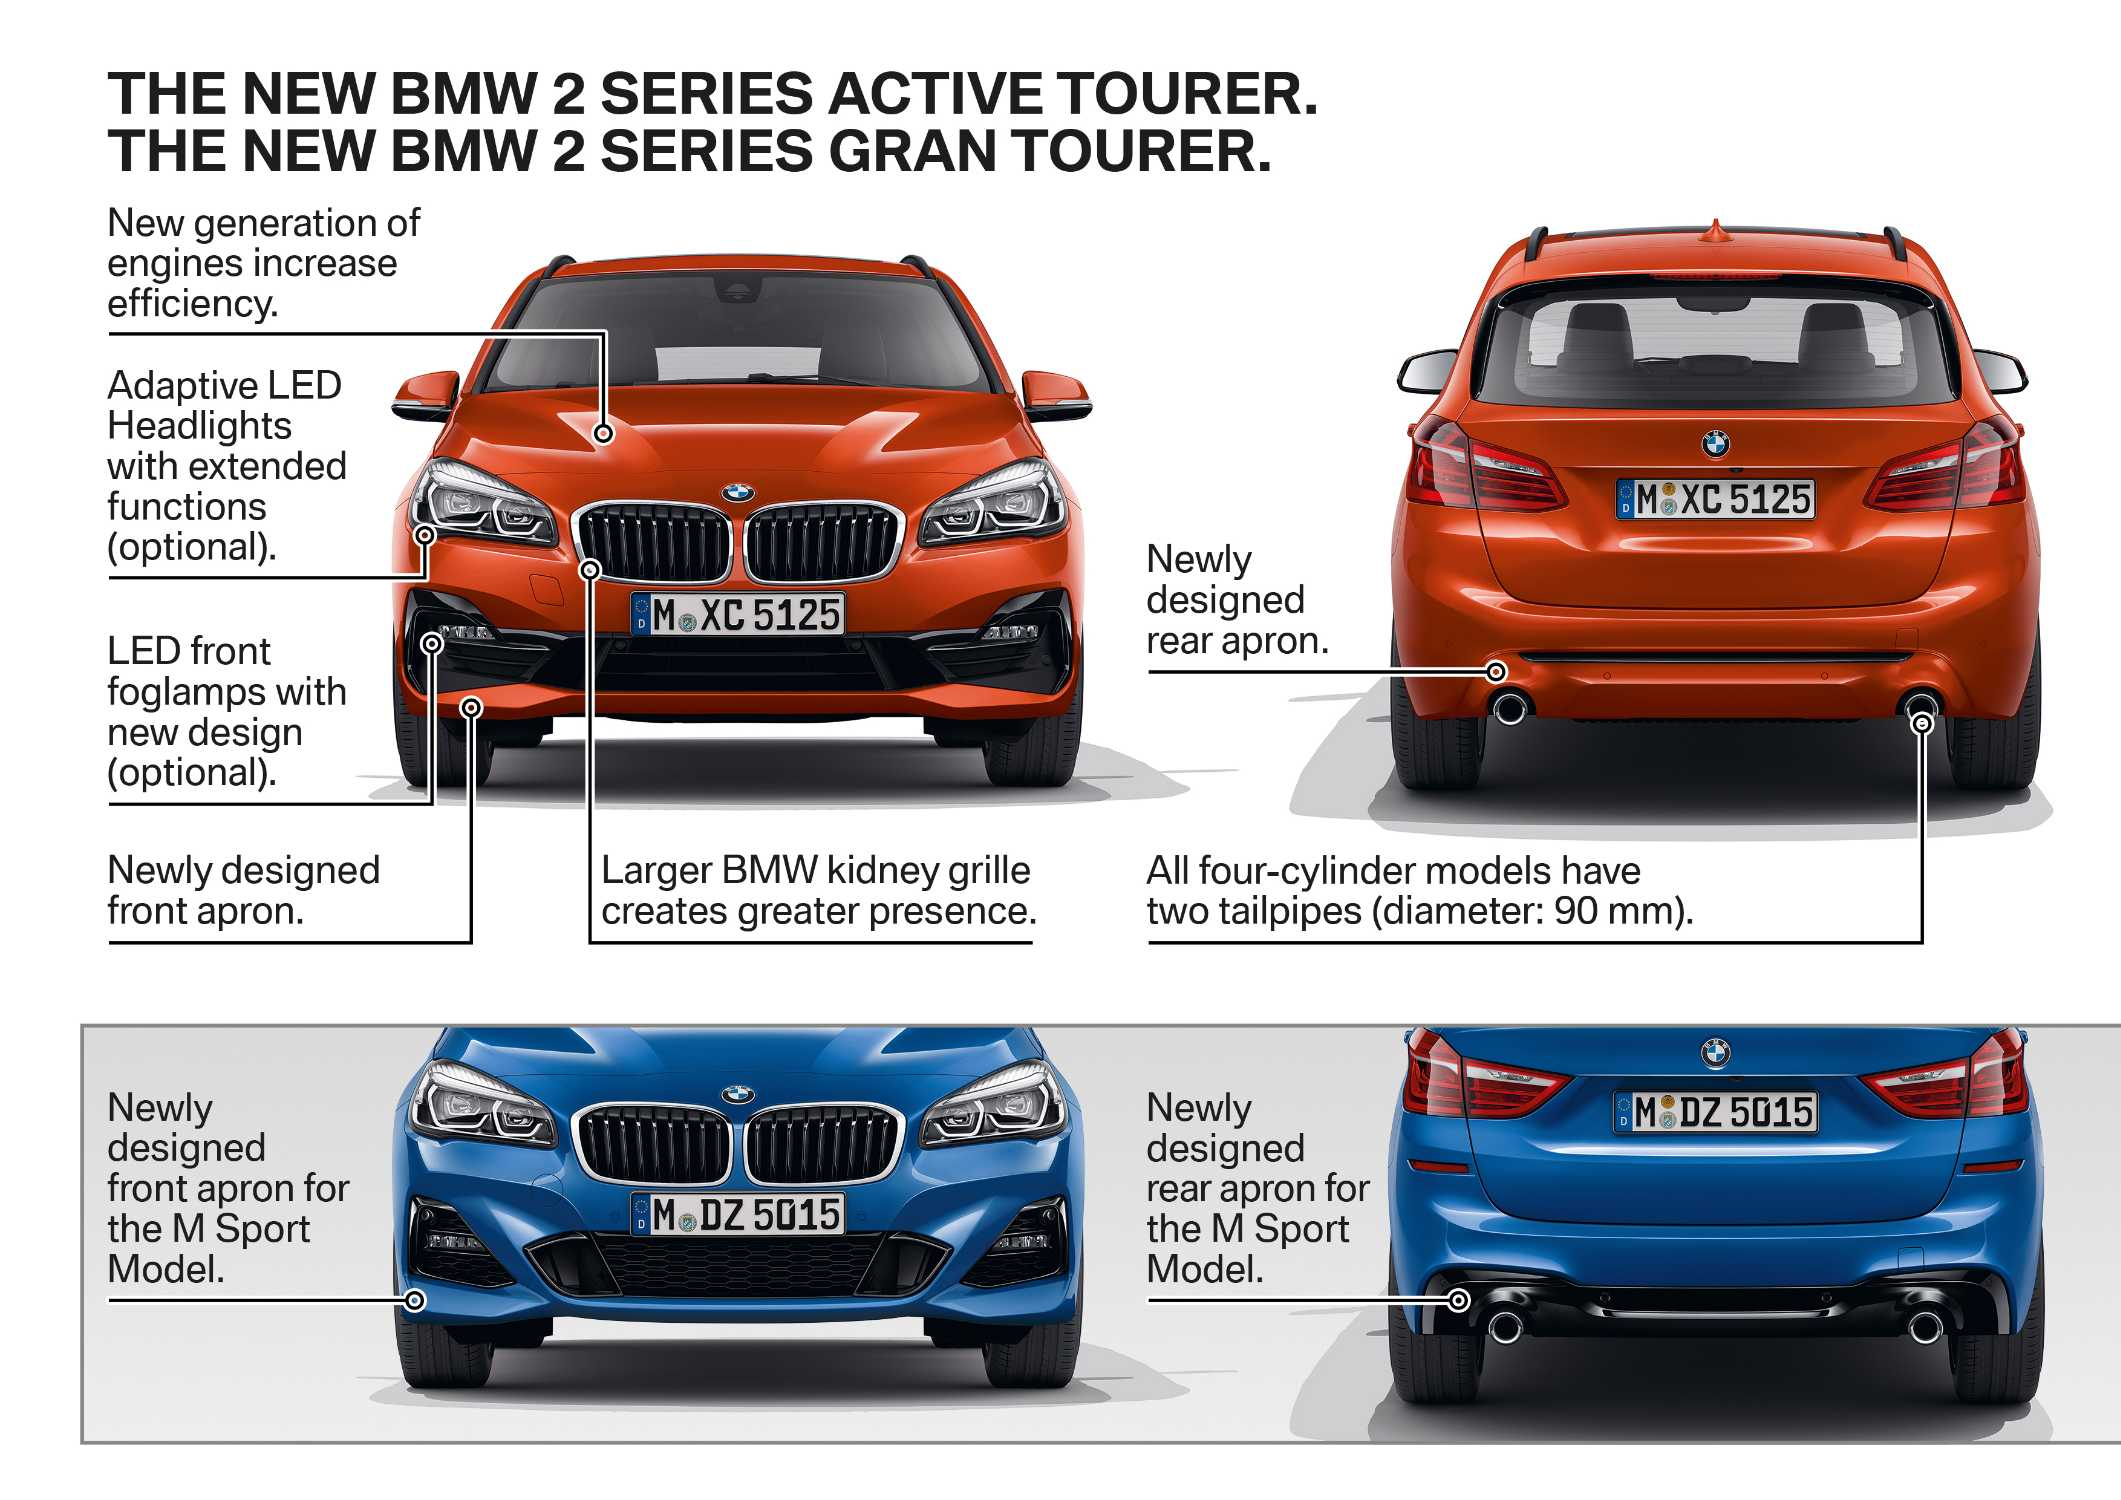 The new BMW 2 Series Active Tourer. The new BMW 2 Series Gran Tourer (01/2018).